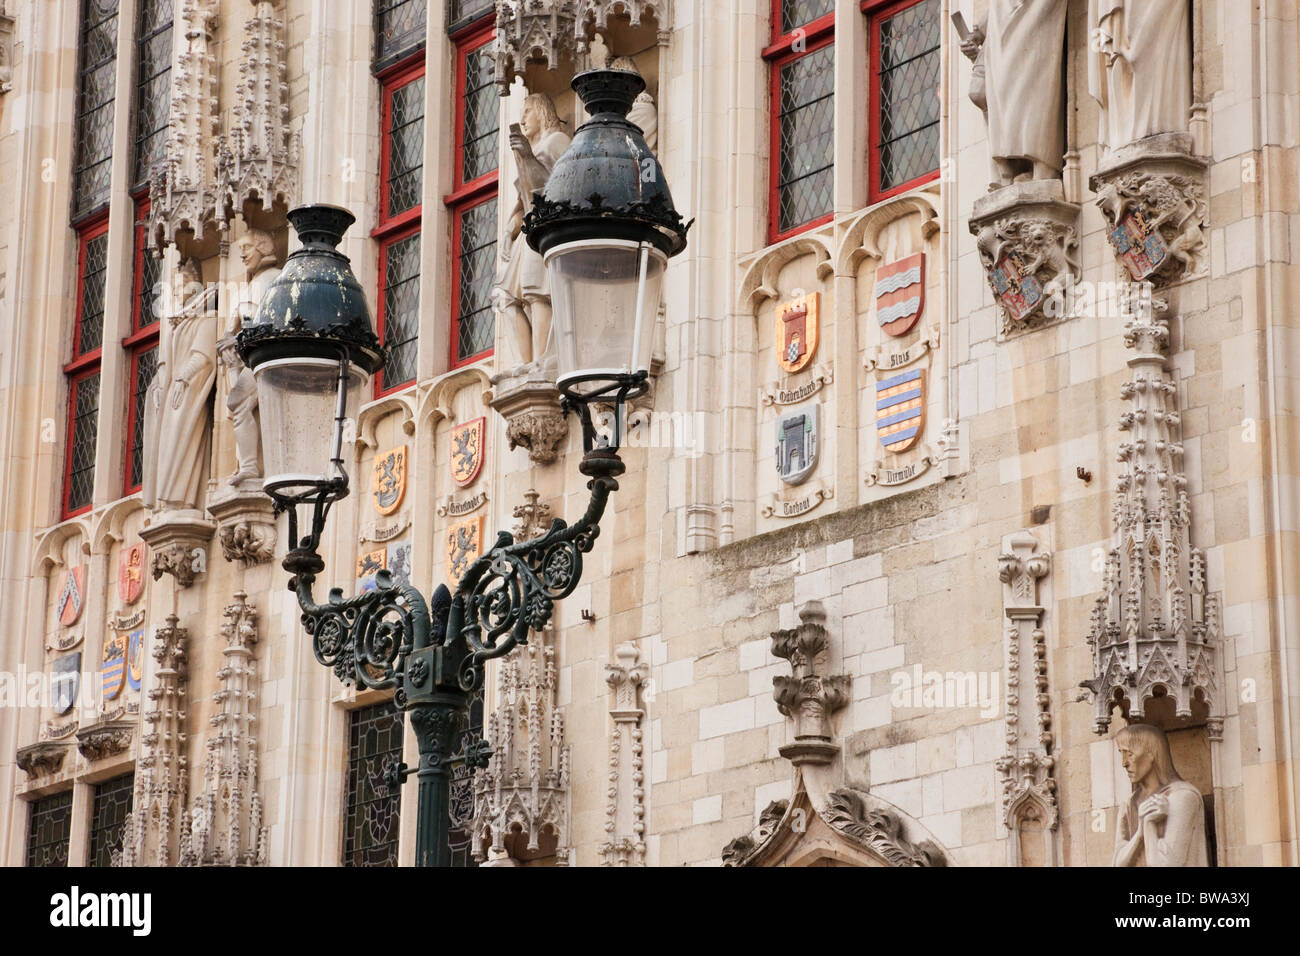 Burg Square, Bruges, East Flanders, Belgium. Lampost outside the historic Gothic Stadhuis City Hall with sandstone - Stock Image